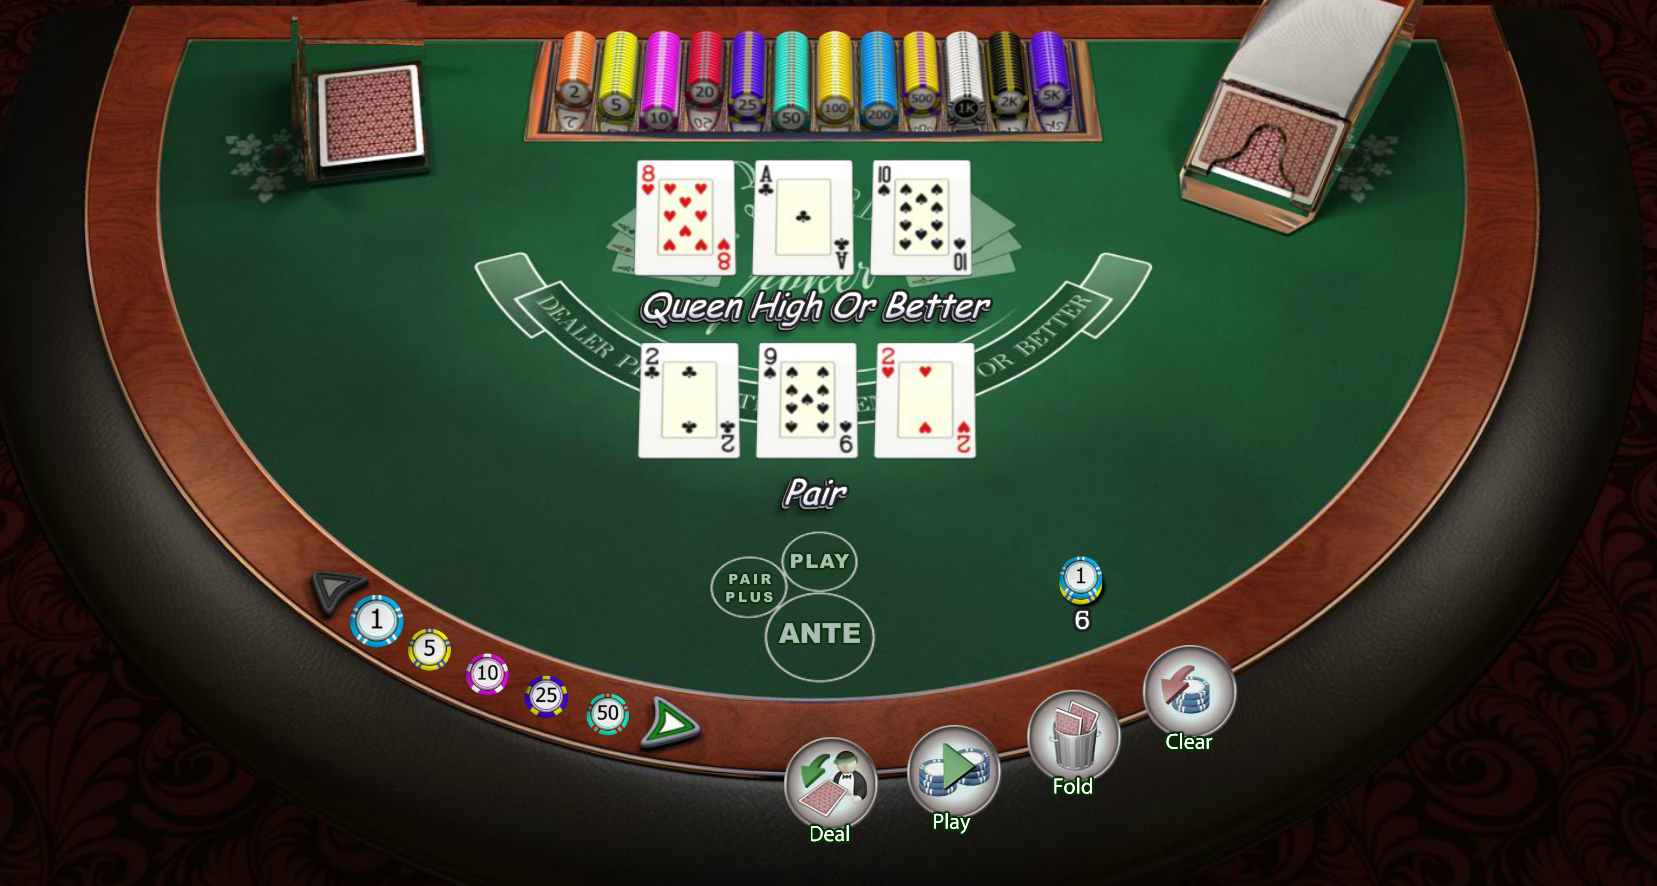 3 card poker odds in a casino